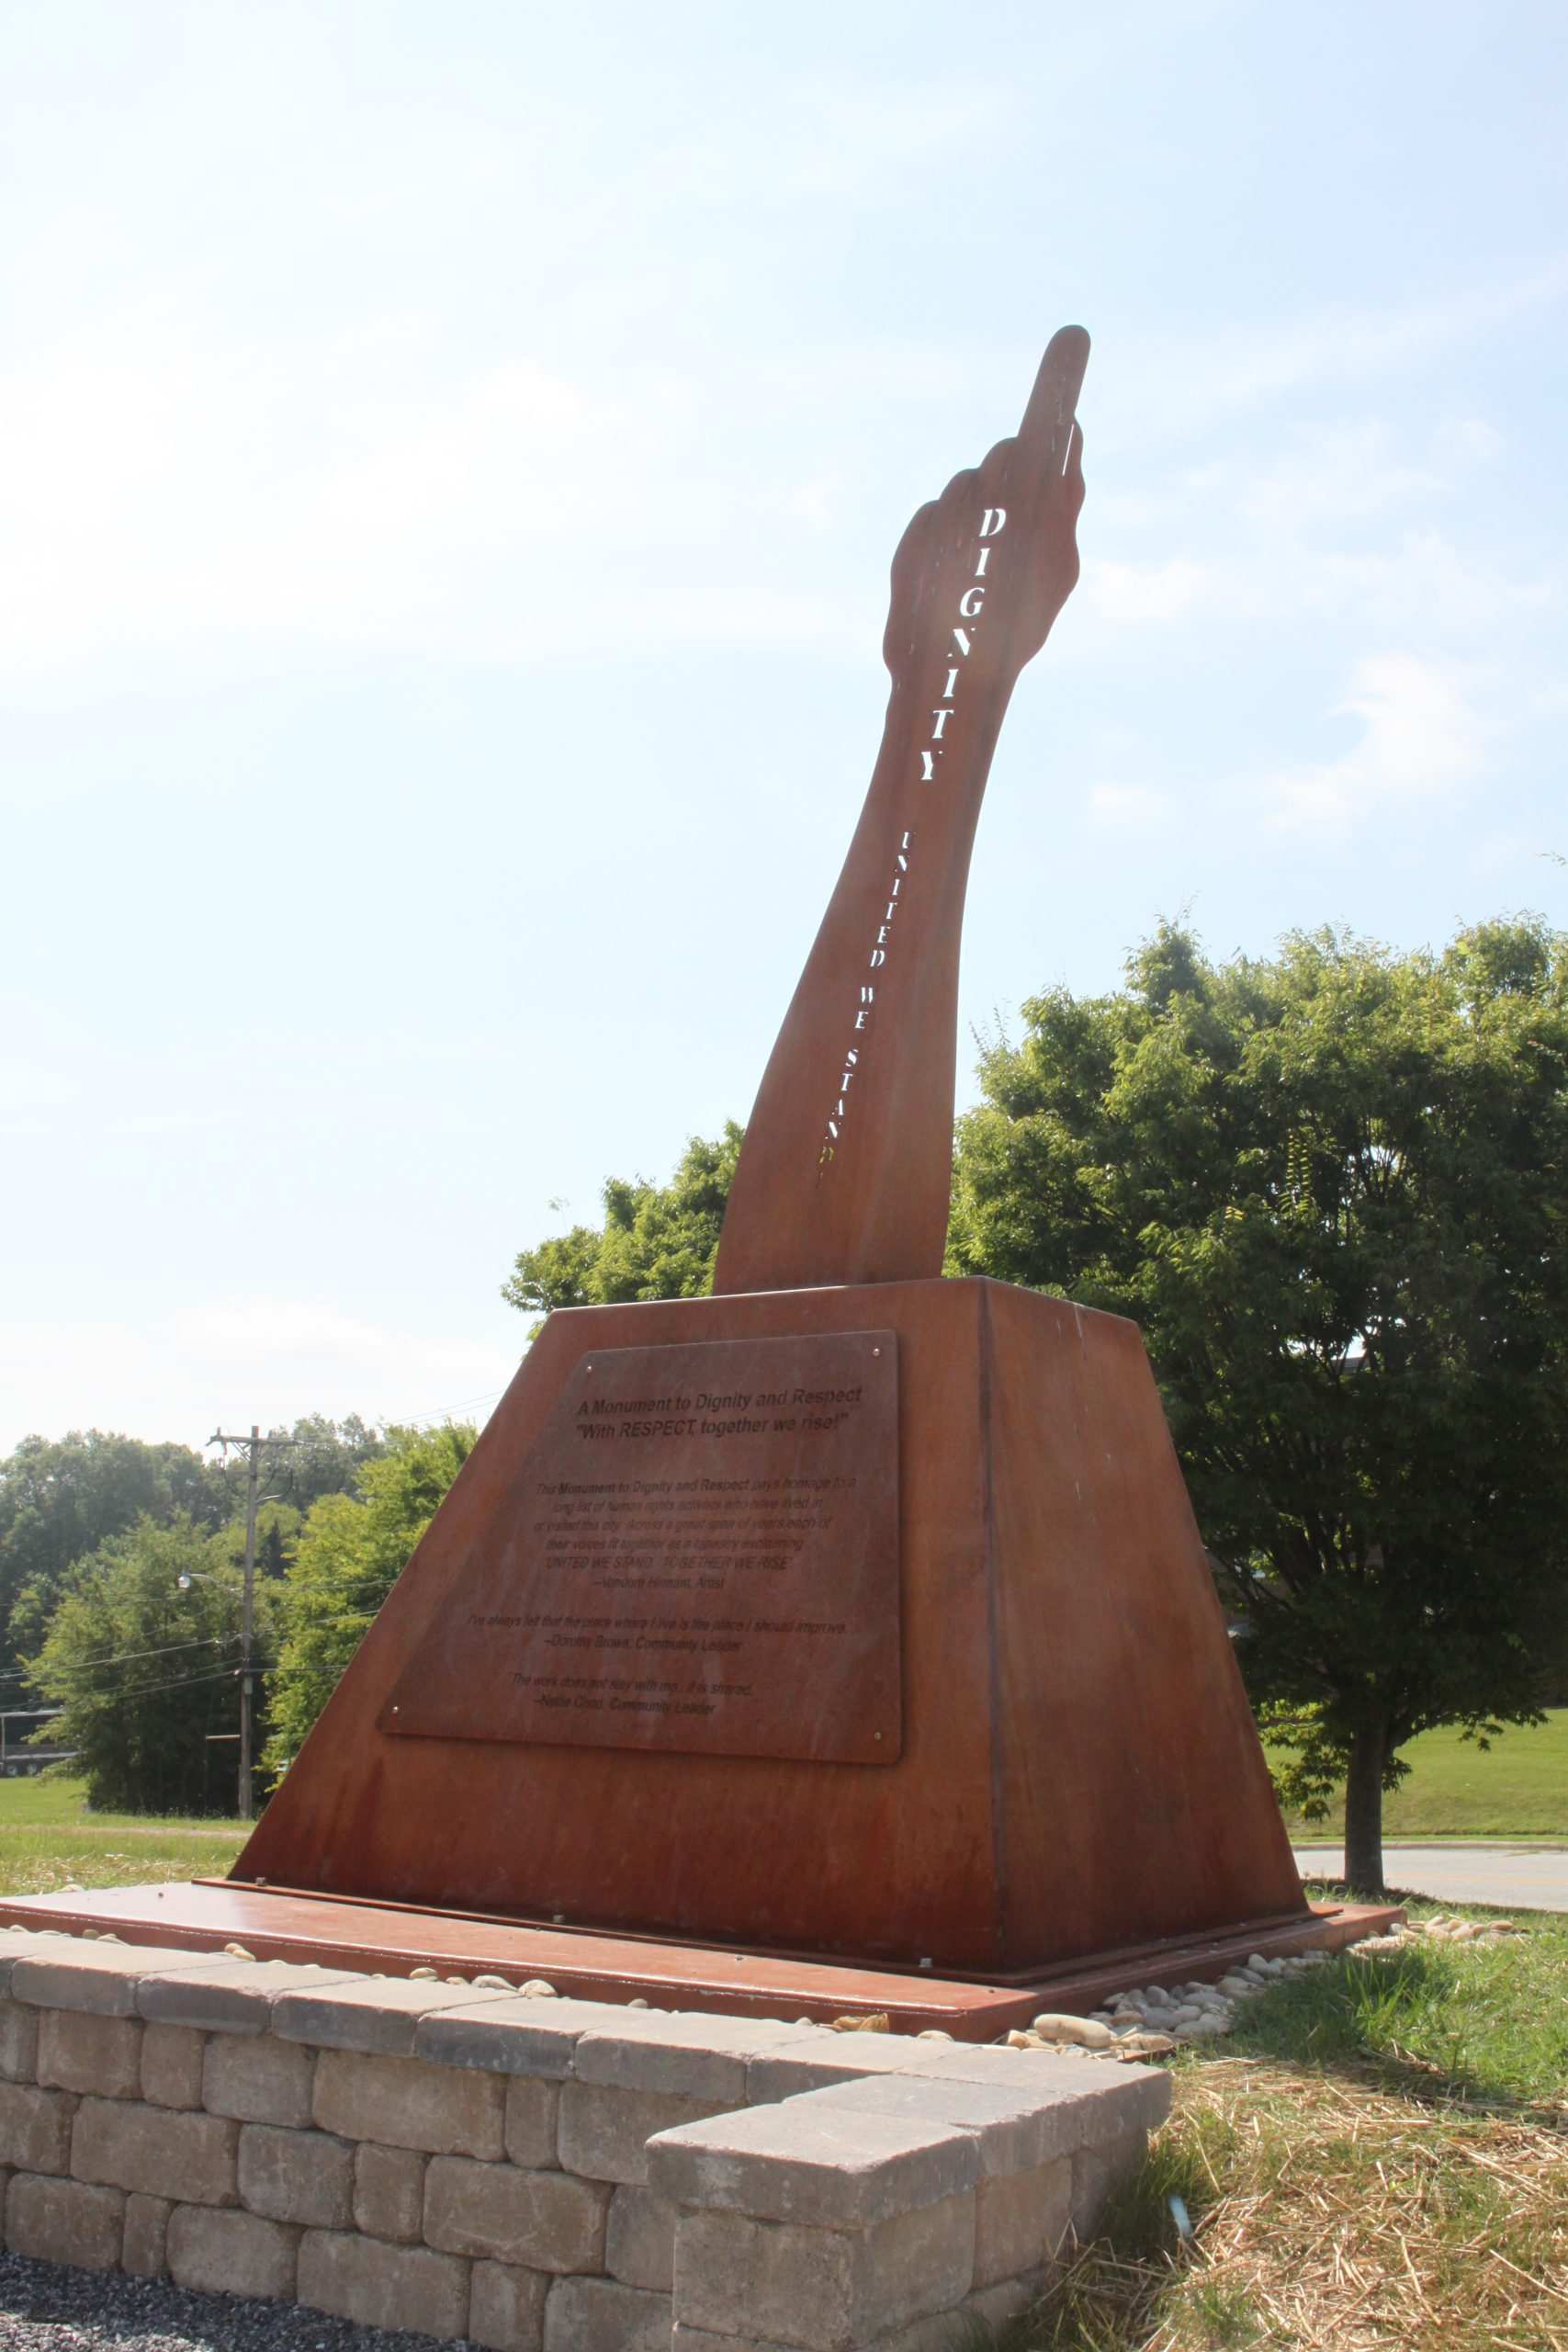 A Monument to Dignity and Respect